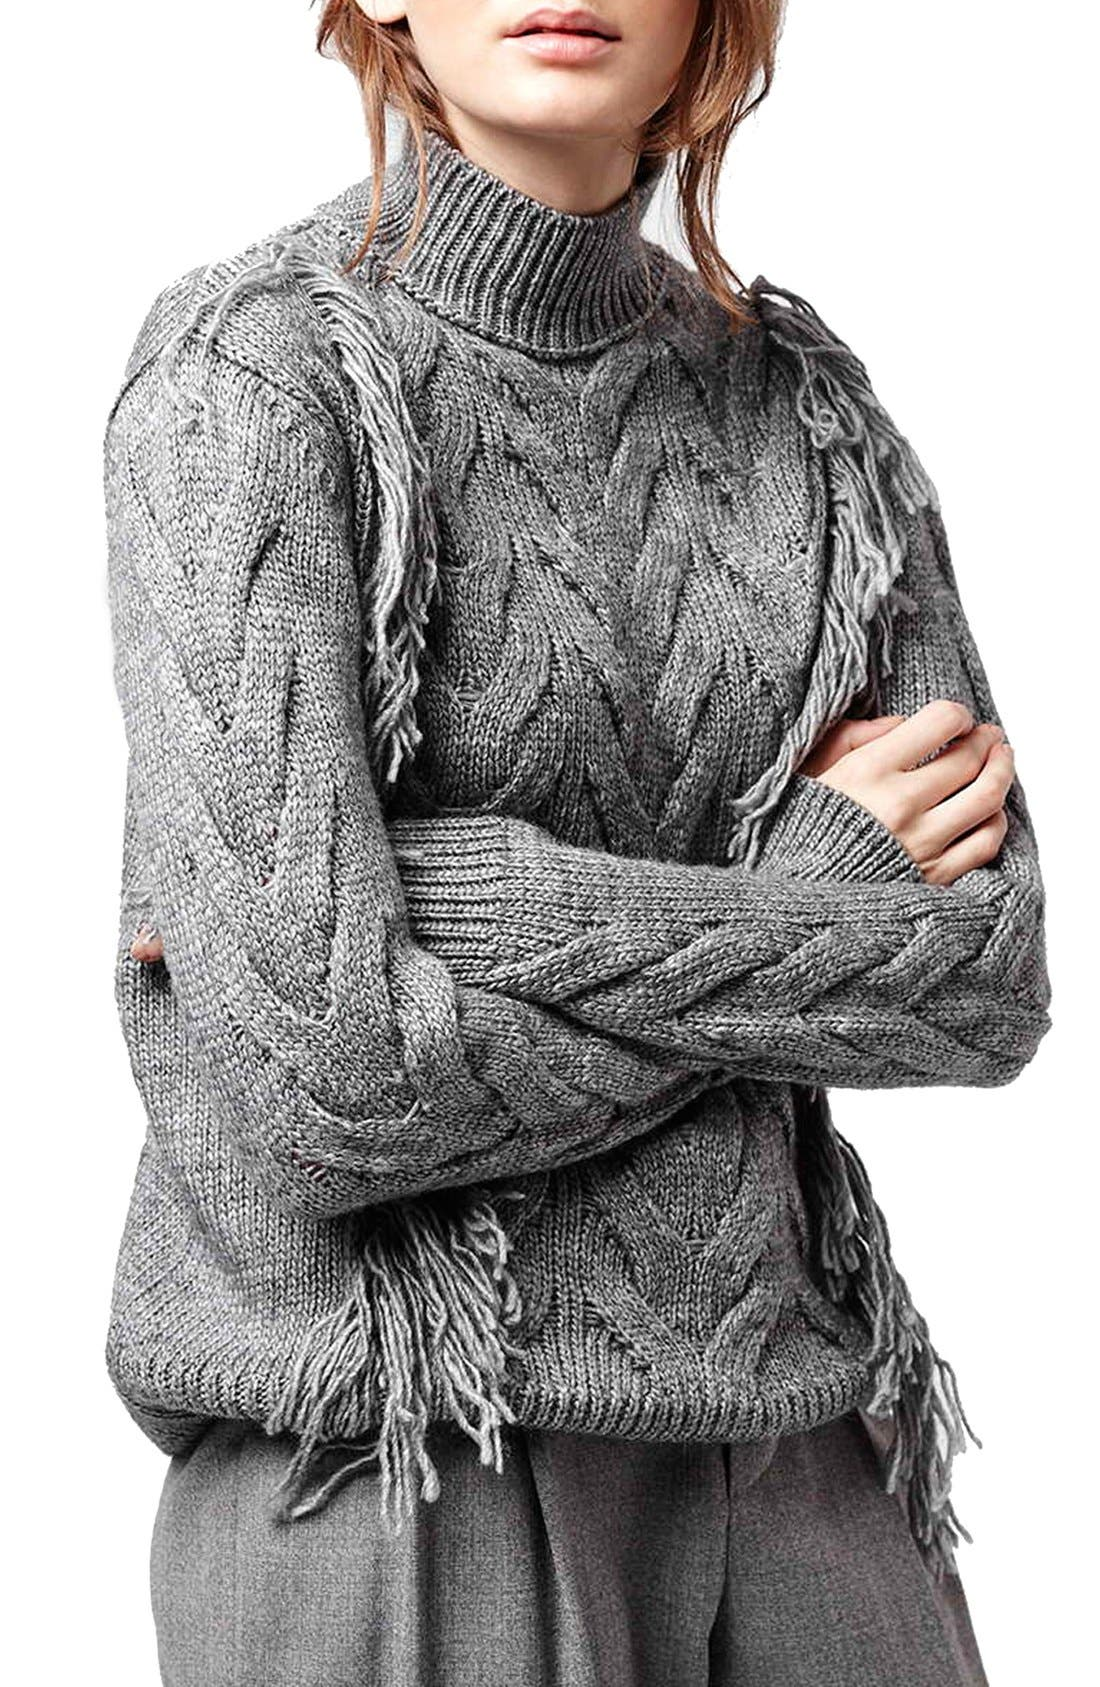 Main Image - Topshop Fringe Cable Knit Sweater